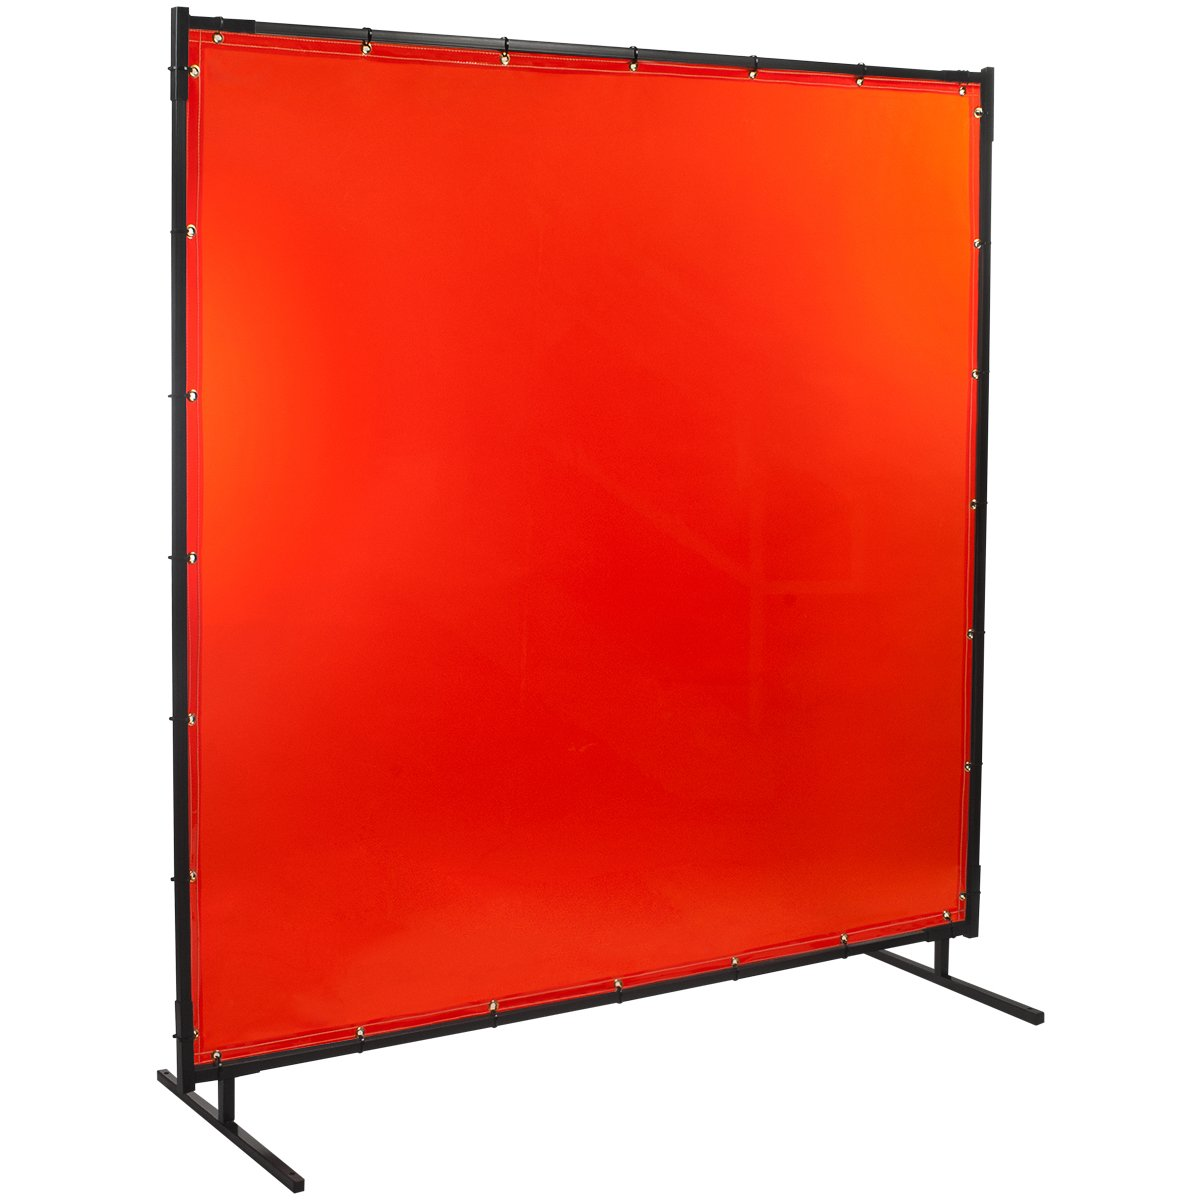 Steiner 538-4X5 Protect-O-Screen Classic Welding Screen with Flame Retardant 14 Mil Tinted Transparent Vinyl Curtain, Orange, 4' x 5' 4' x 5' ERB